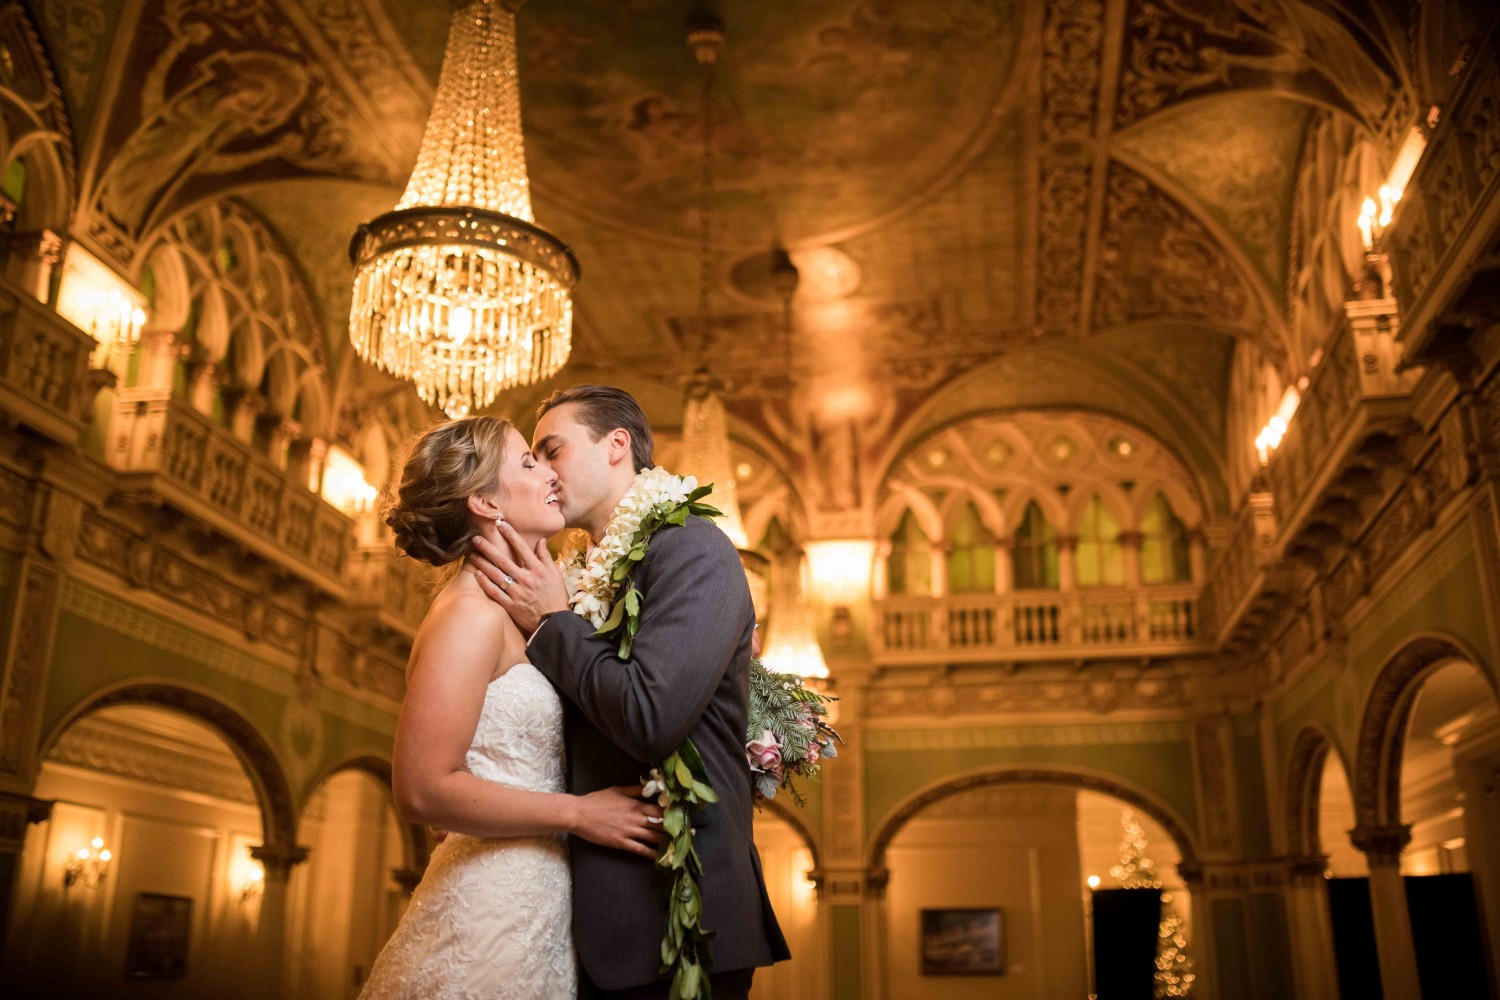 Spokane Davenport wedding inside a ballroom with bride and groom kissing